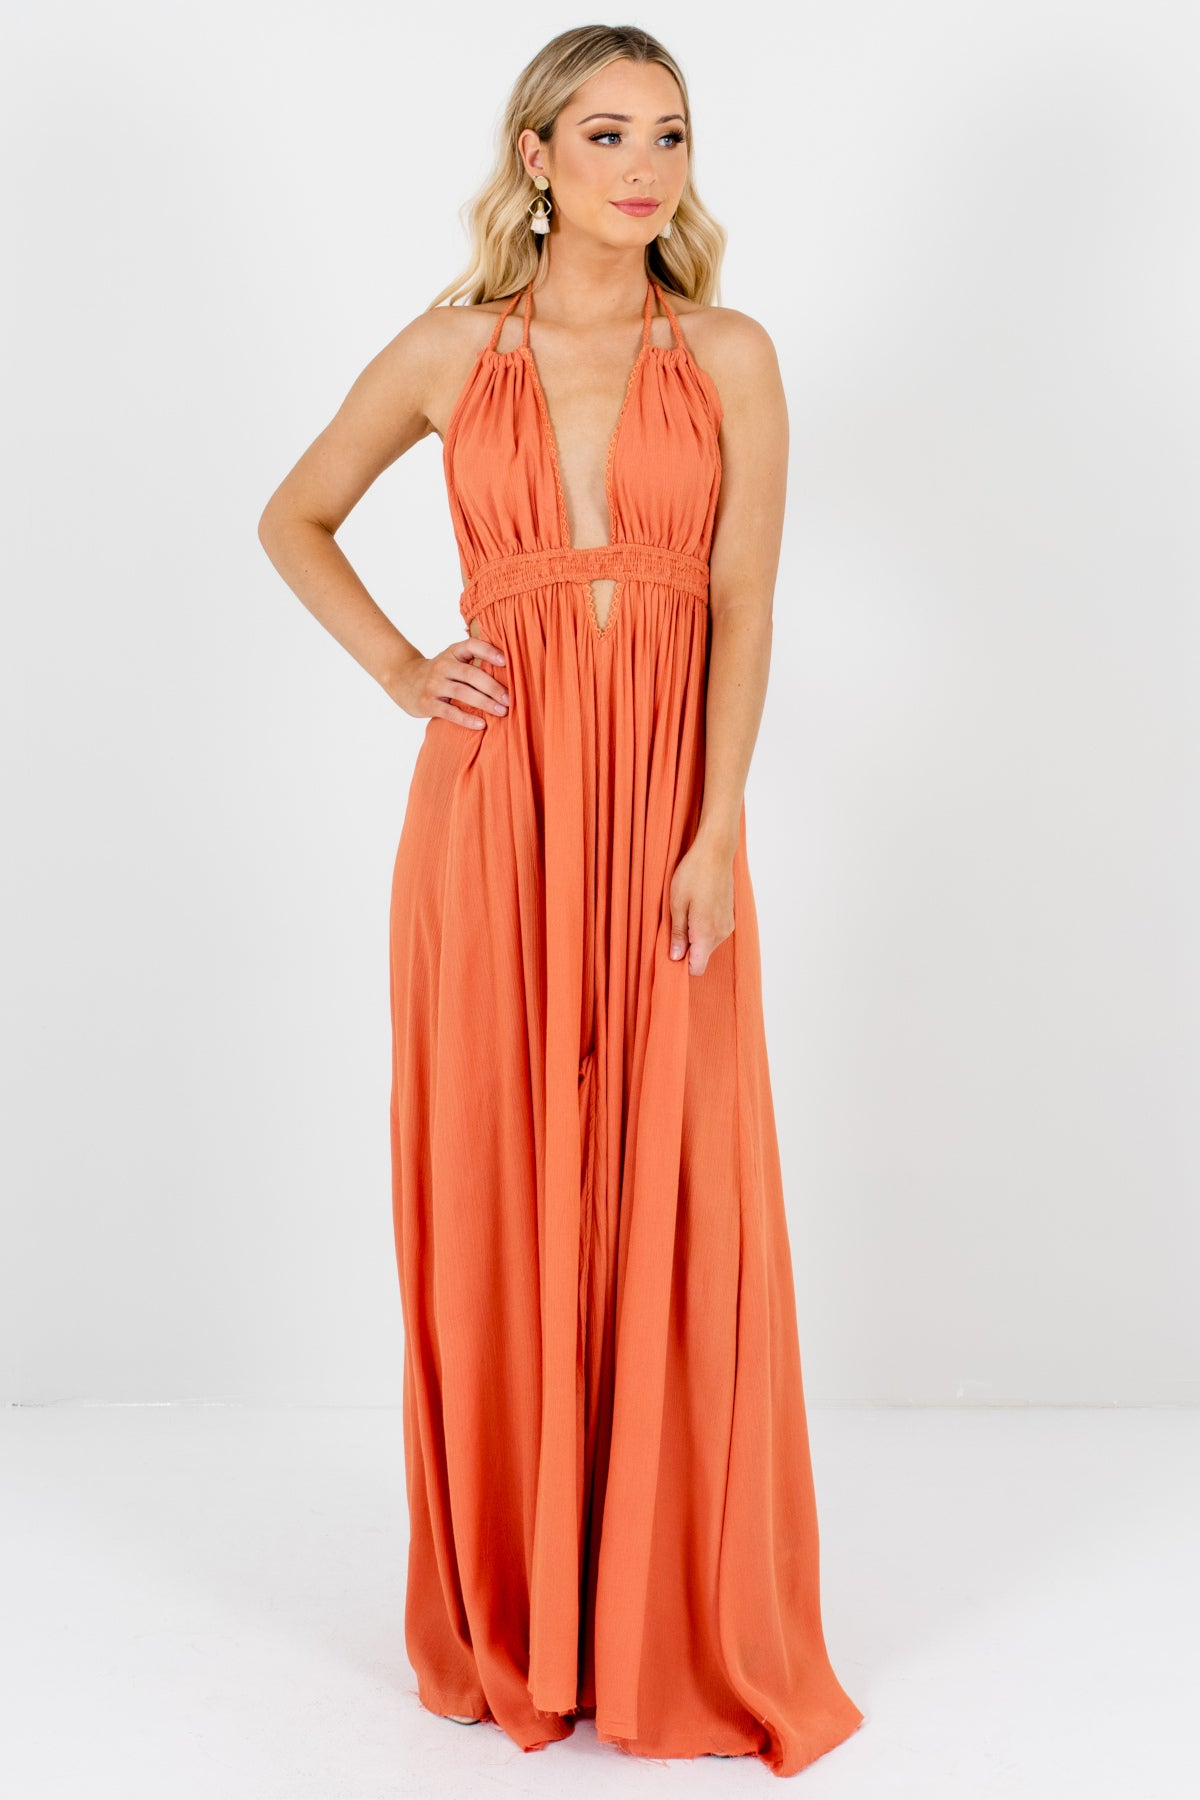 972758a1d30 Orange Flowy Long Boutique Maxi Dresses with Open Back and Tassel Ties